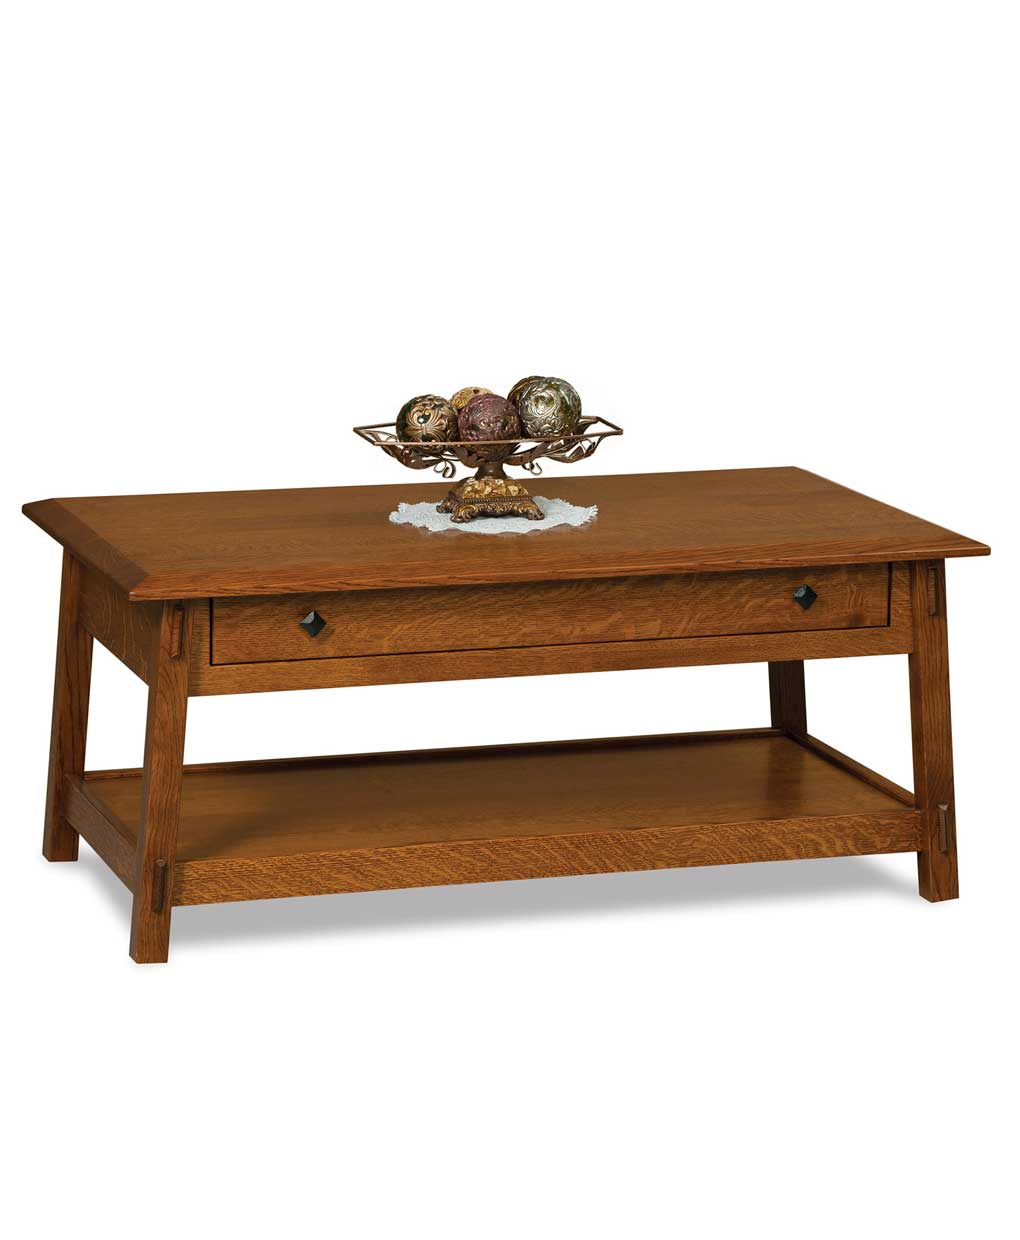 Letterpress Tray Coffee Table: Colbran Open Coffee Table With Drawer